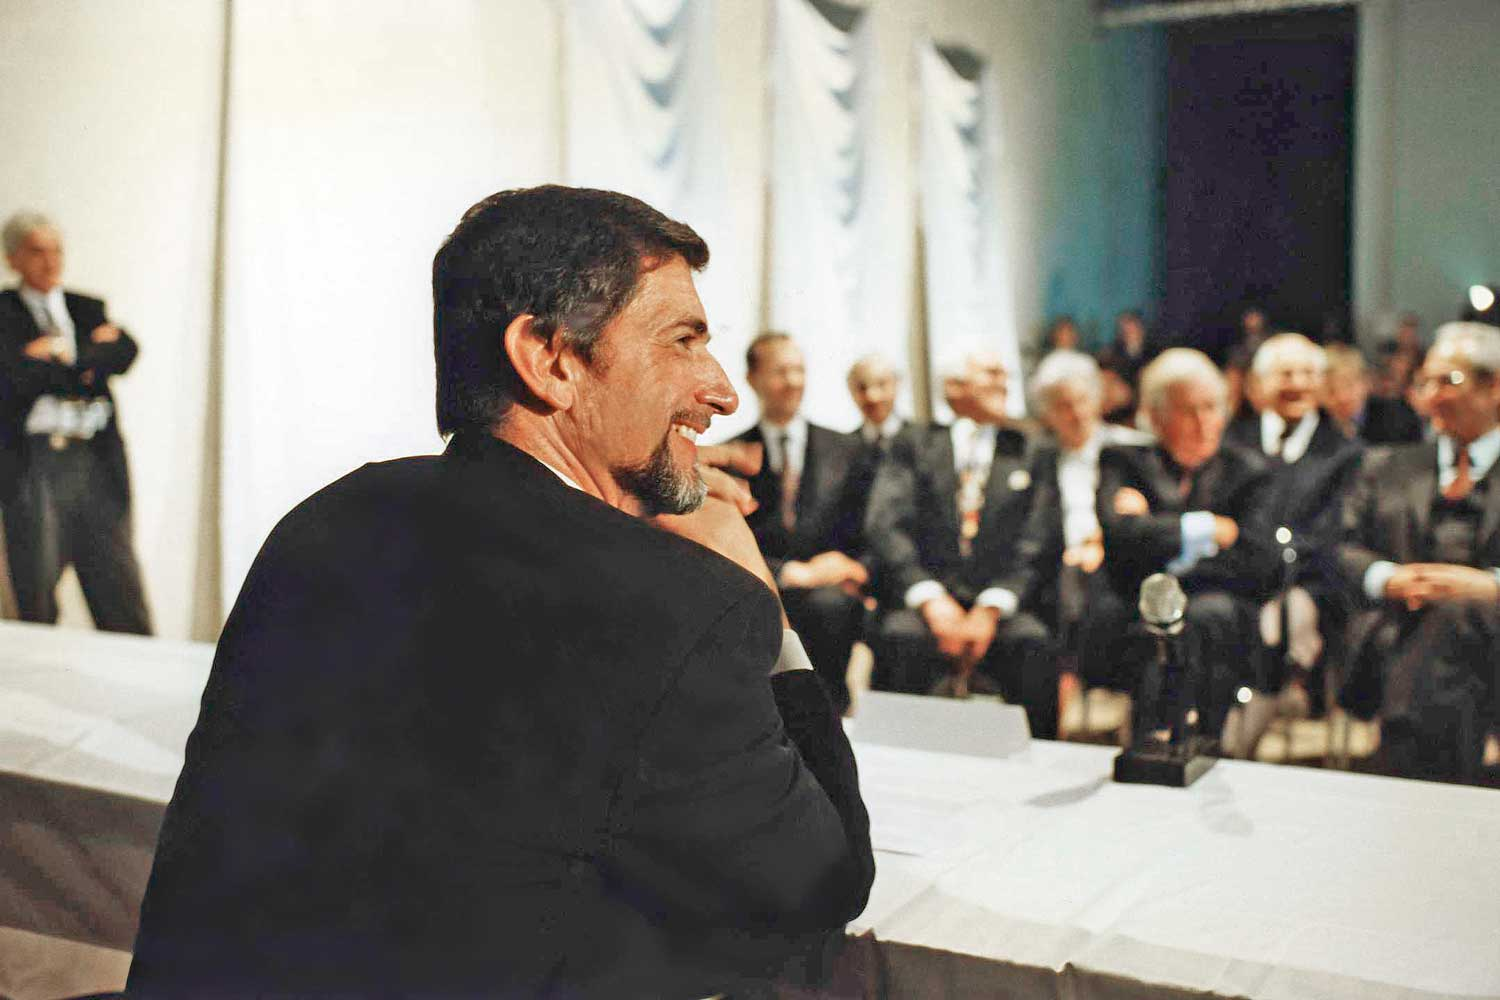 Günter Blümlein at the 24 October 1994 press conference for the launch of A. Lange & Söhne